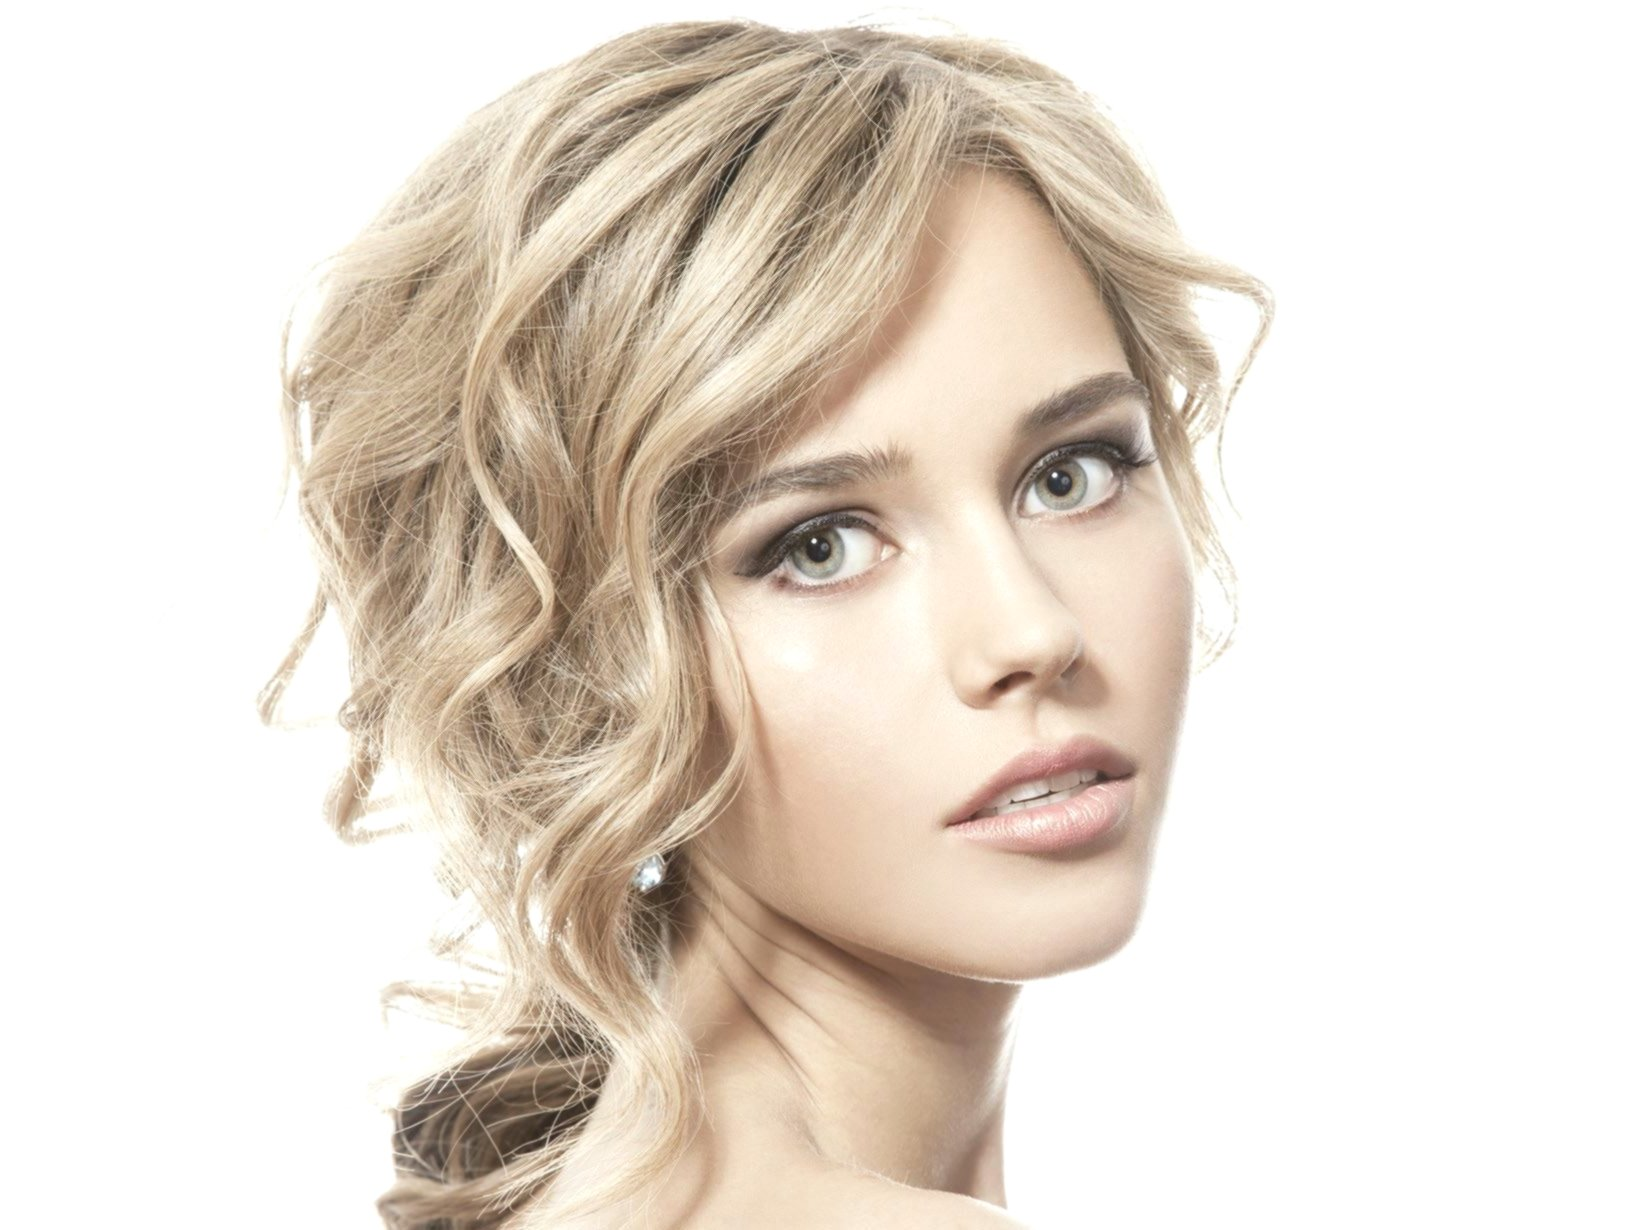 unique short hairstyles for mature women building layout-Terrific Short Hairstyles For Elderly Women's Decor